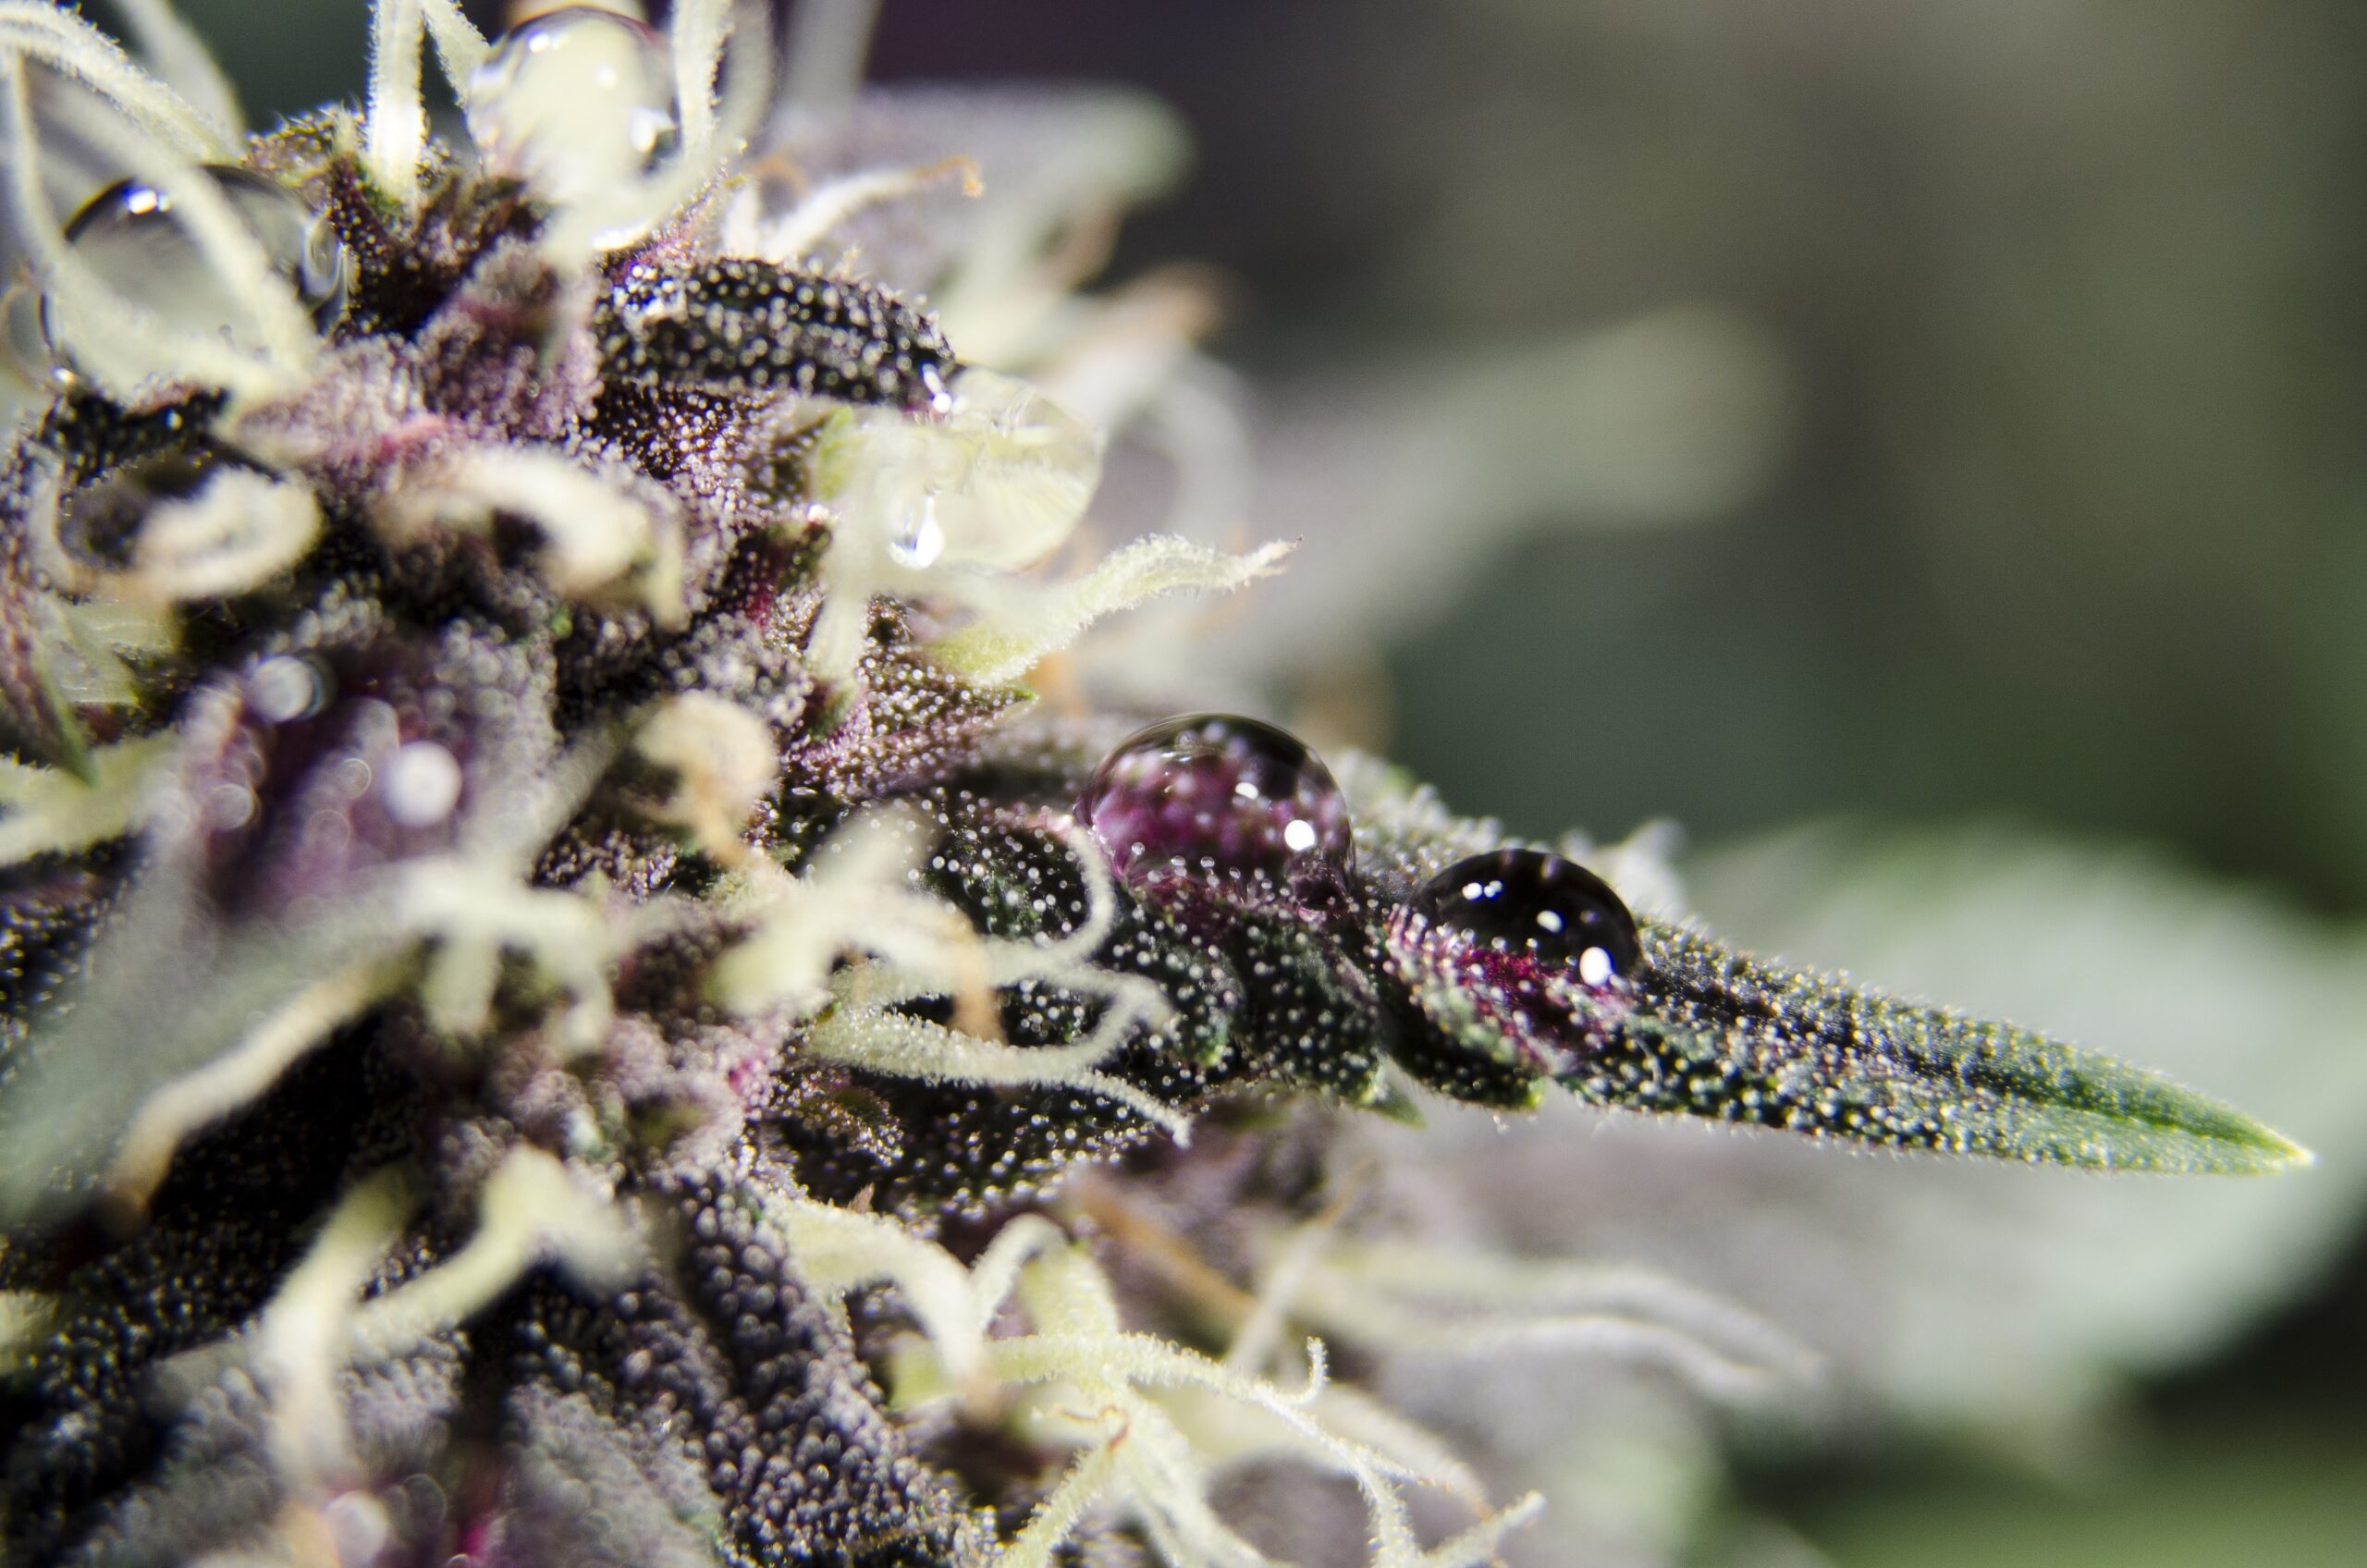 purple-high-thc-cannabis-flower-with-resin